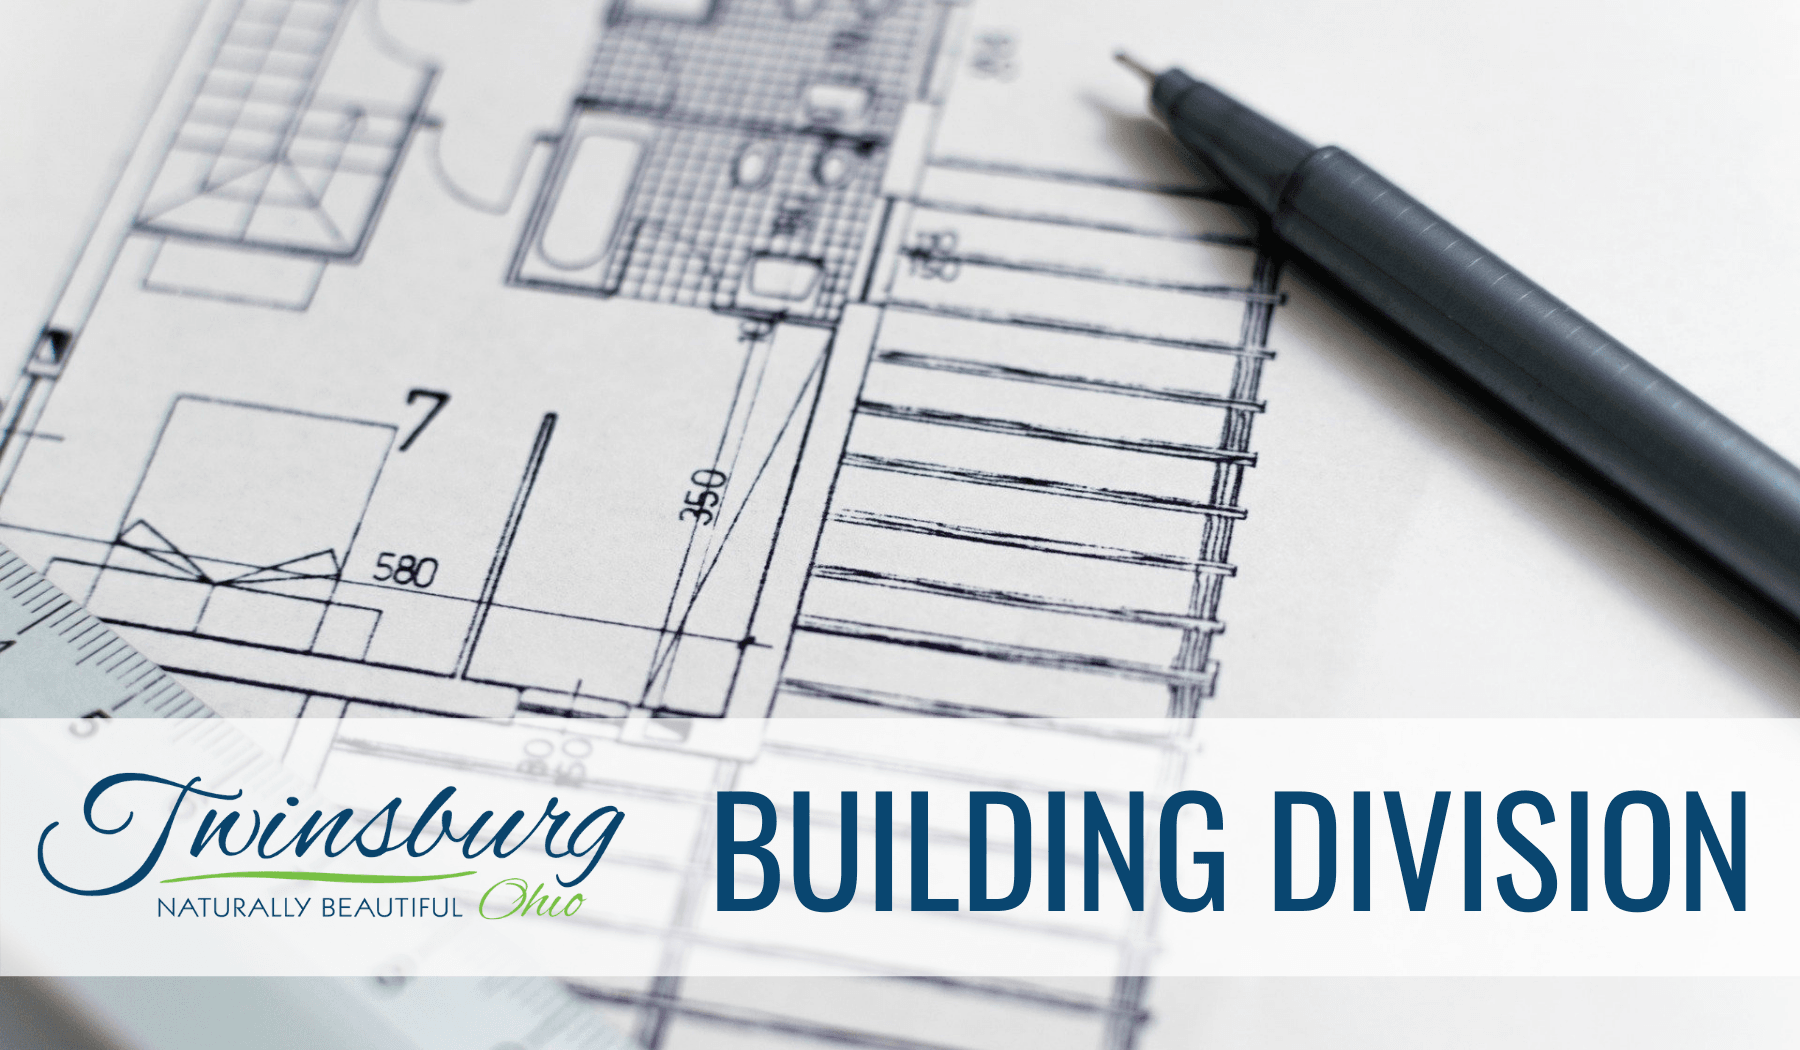 Twinsburg Building Division